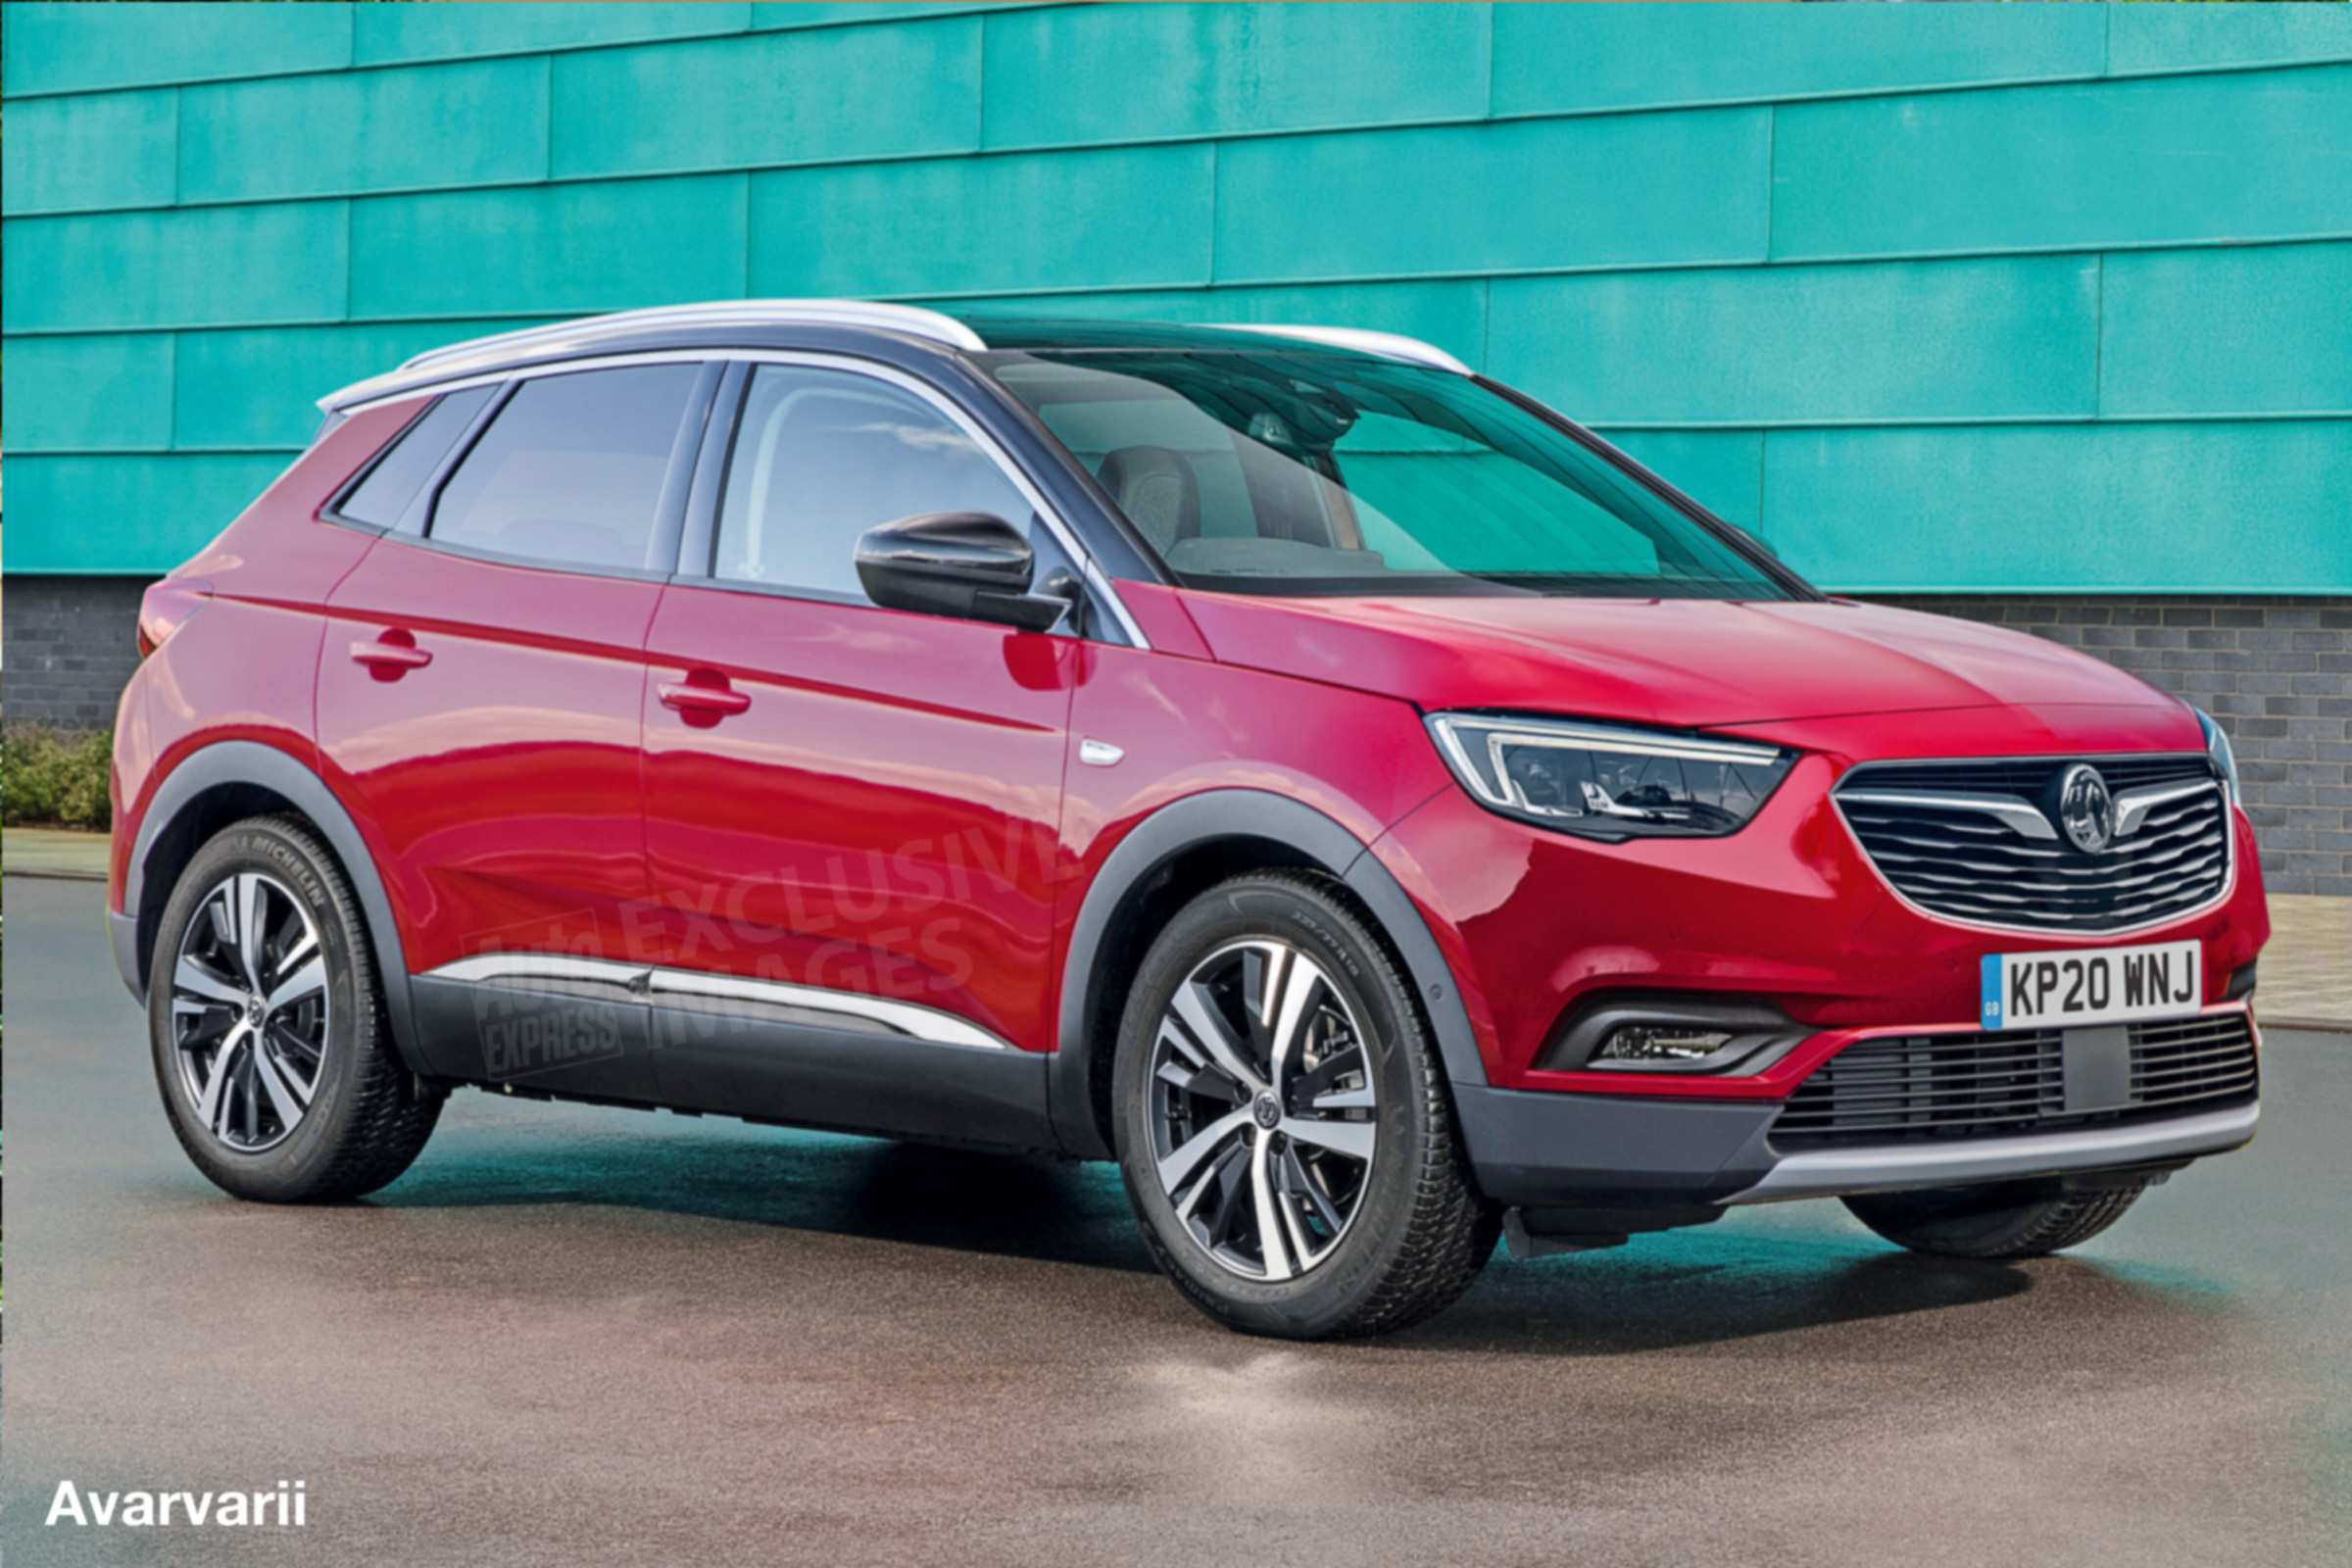 83 The Best Uj Opel Mokka X 2020 Price and Review